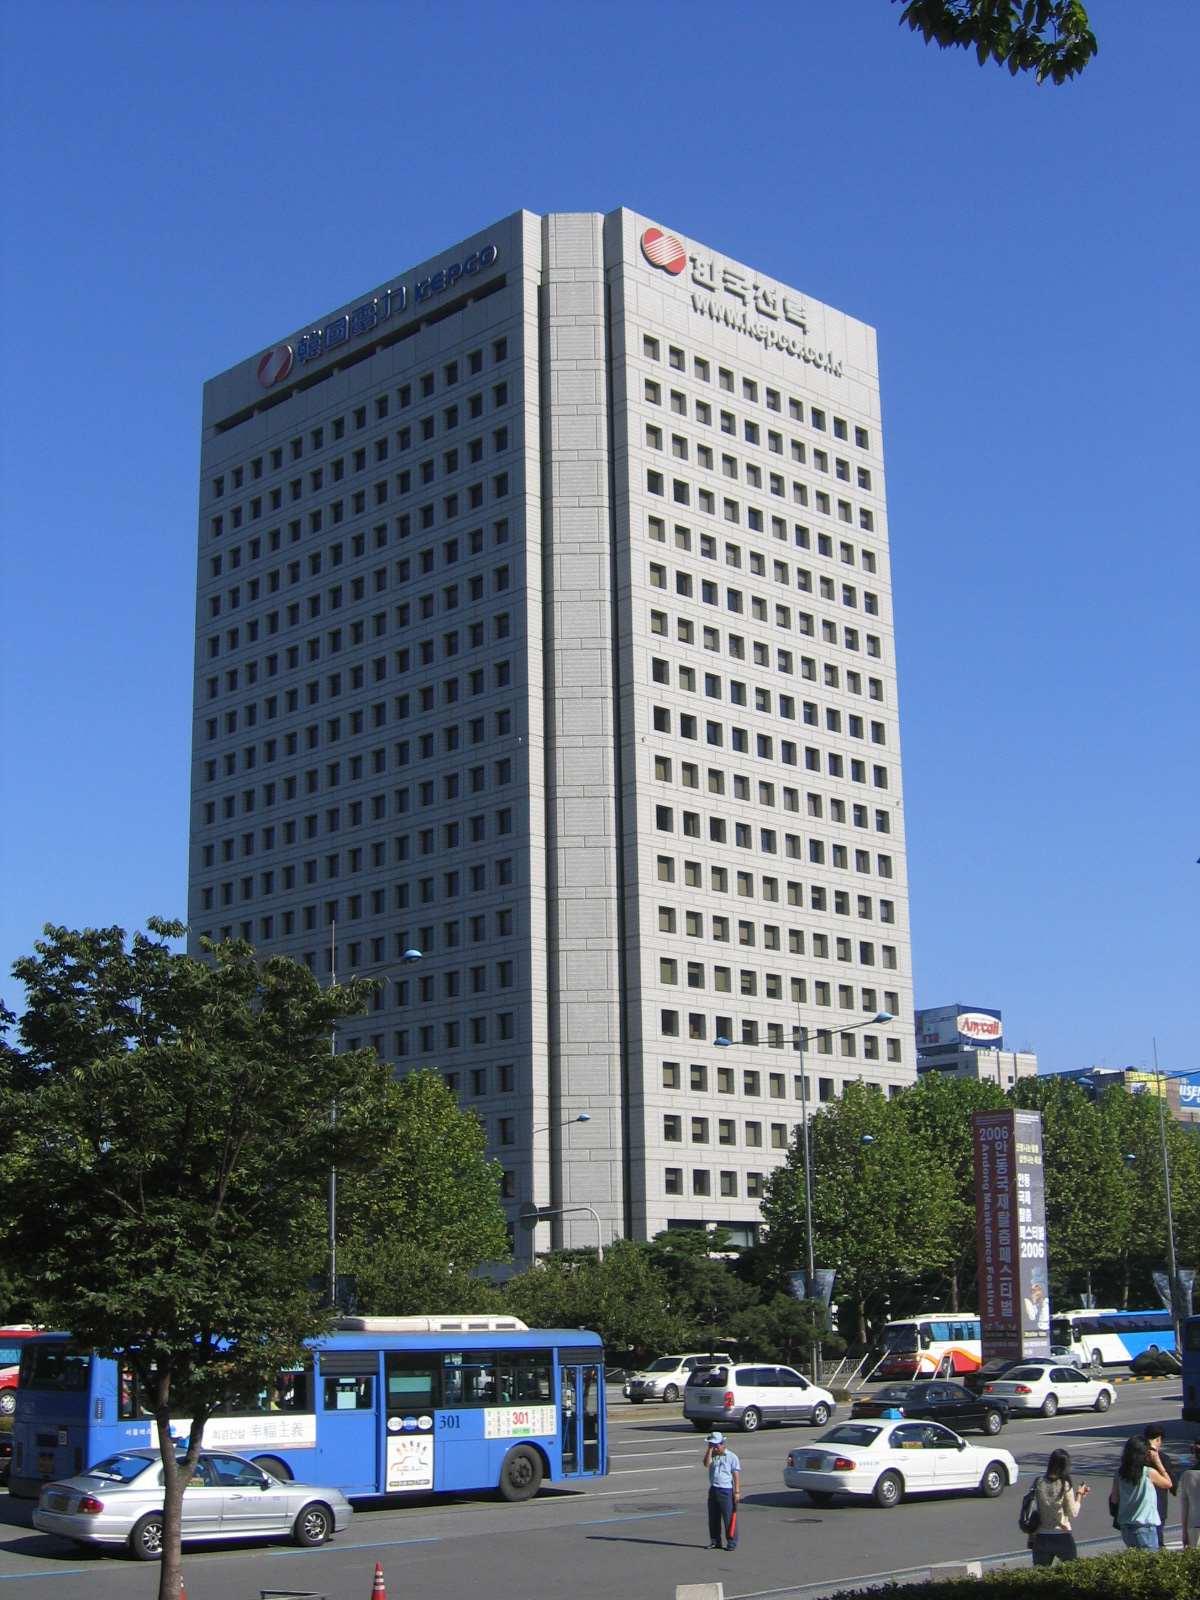 The KEPCO building in Seoul, South Korea. (Photo via Wikimedia Commons)